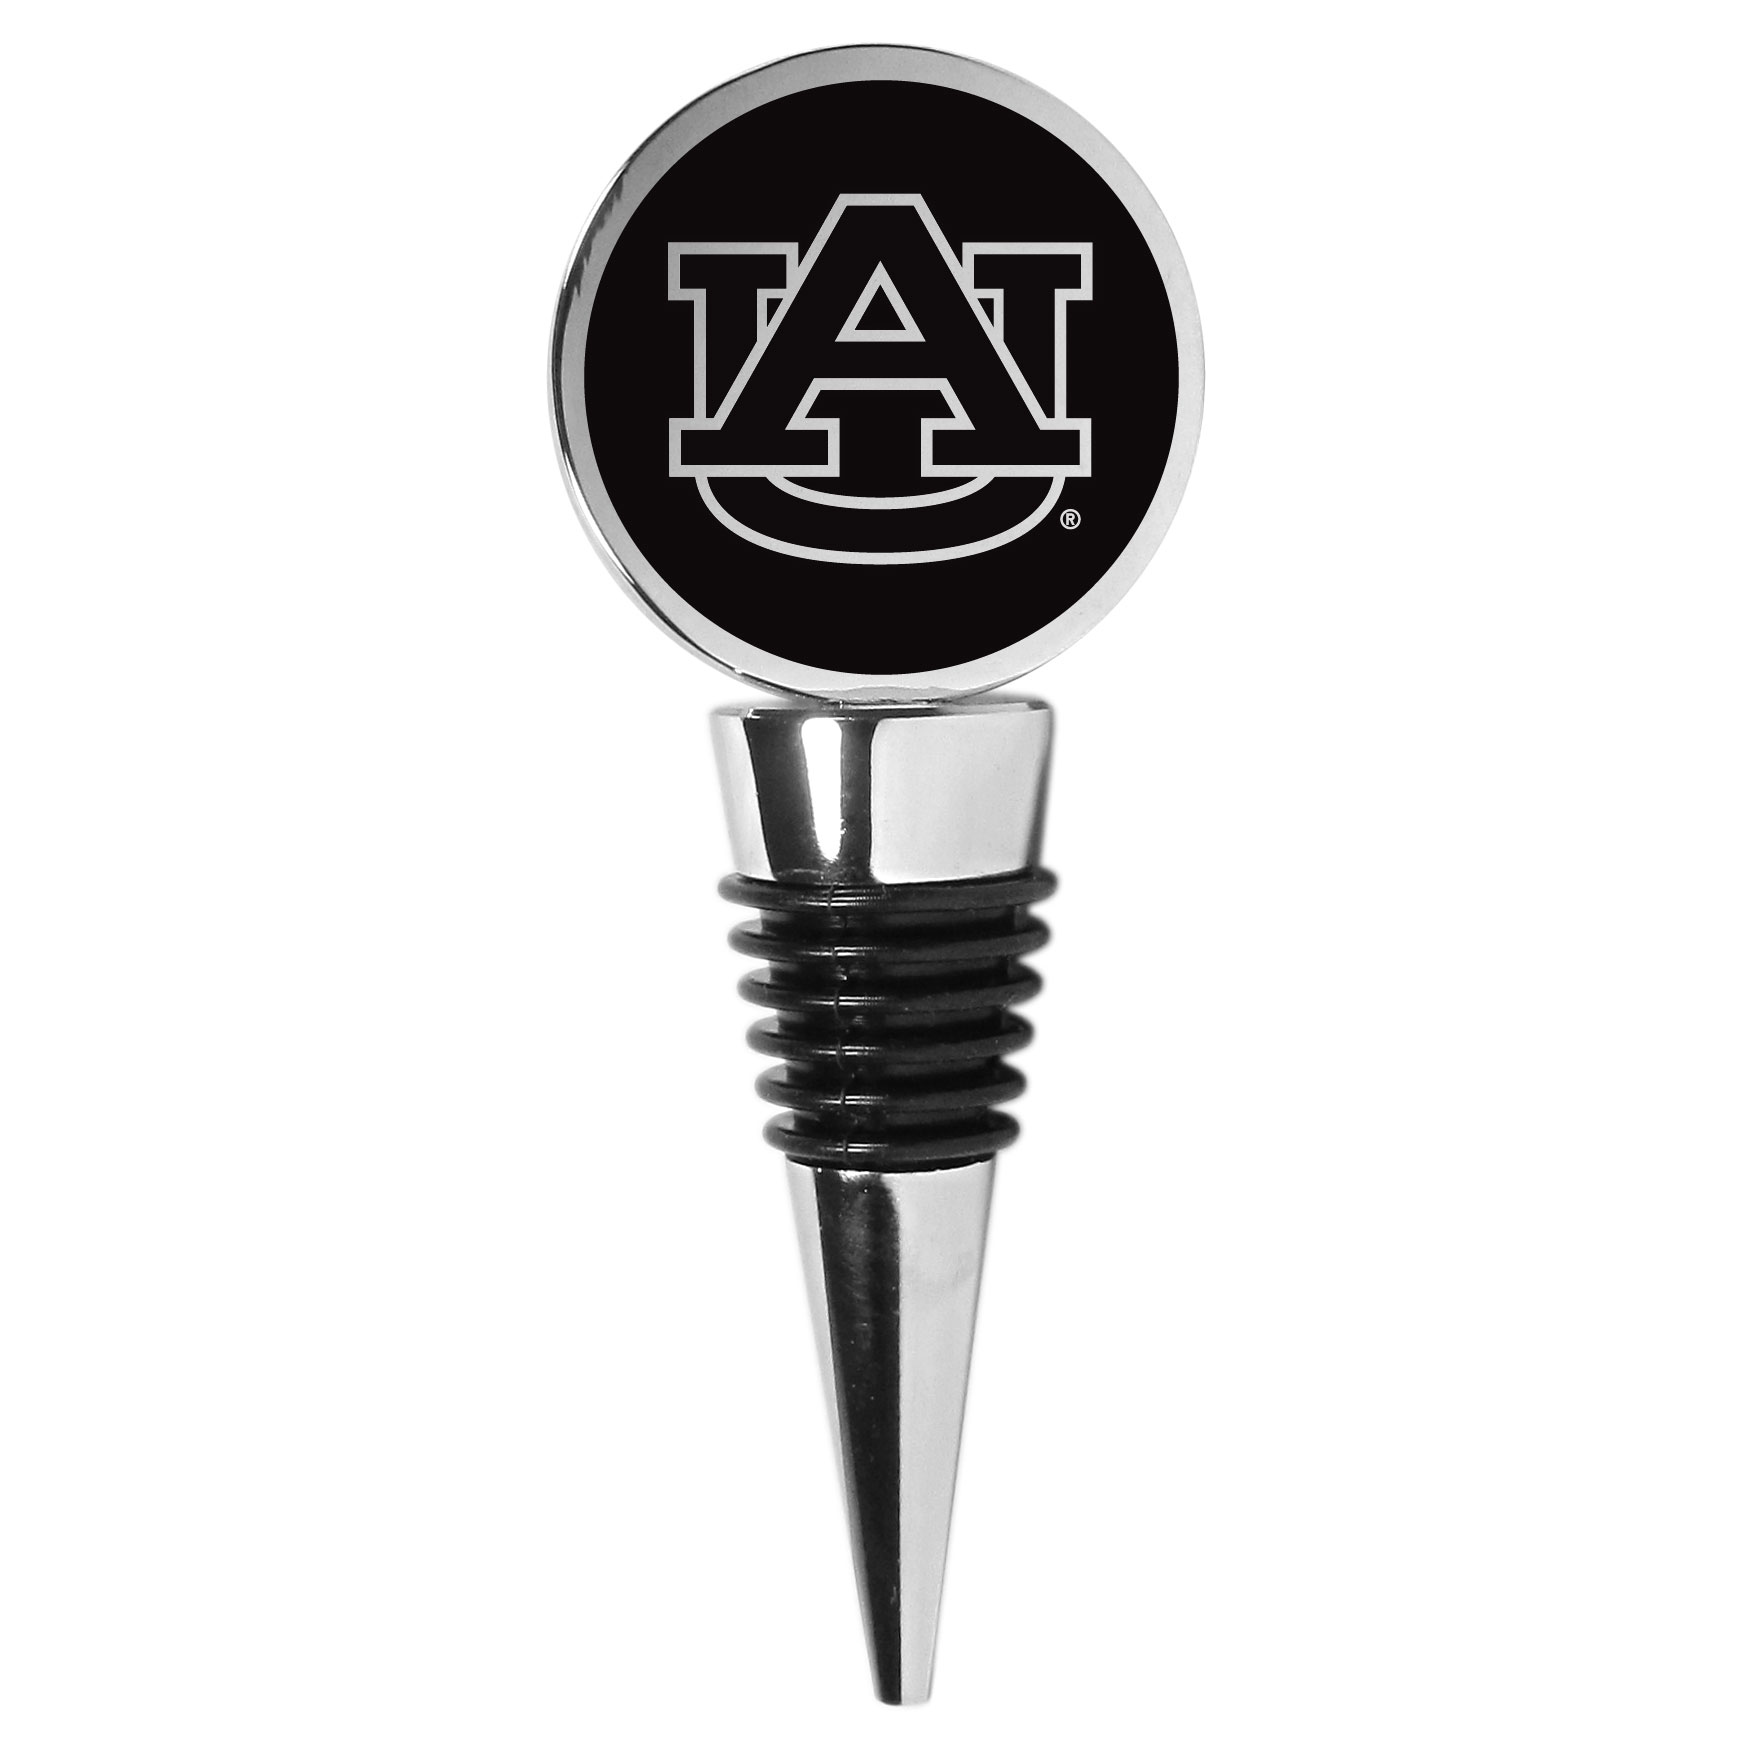 Auburn Tigers Wine Stopper - This beautiful Auburn Tigers wine stopper has a classy monochromatic logo on the top disc. The tapered rubber rings allow you to create a tight seal on multiple sizes of wine bottles so that you are able to preserve the wine for later enjoyment. This a perfect addition to a game day celebration.